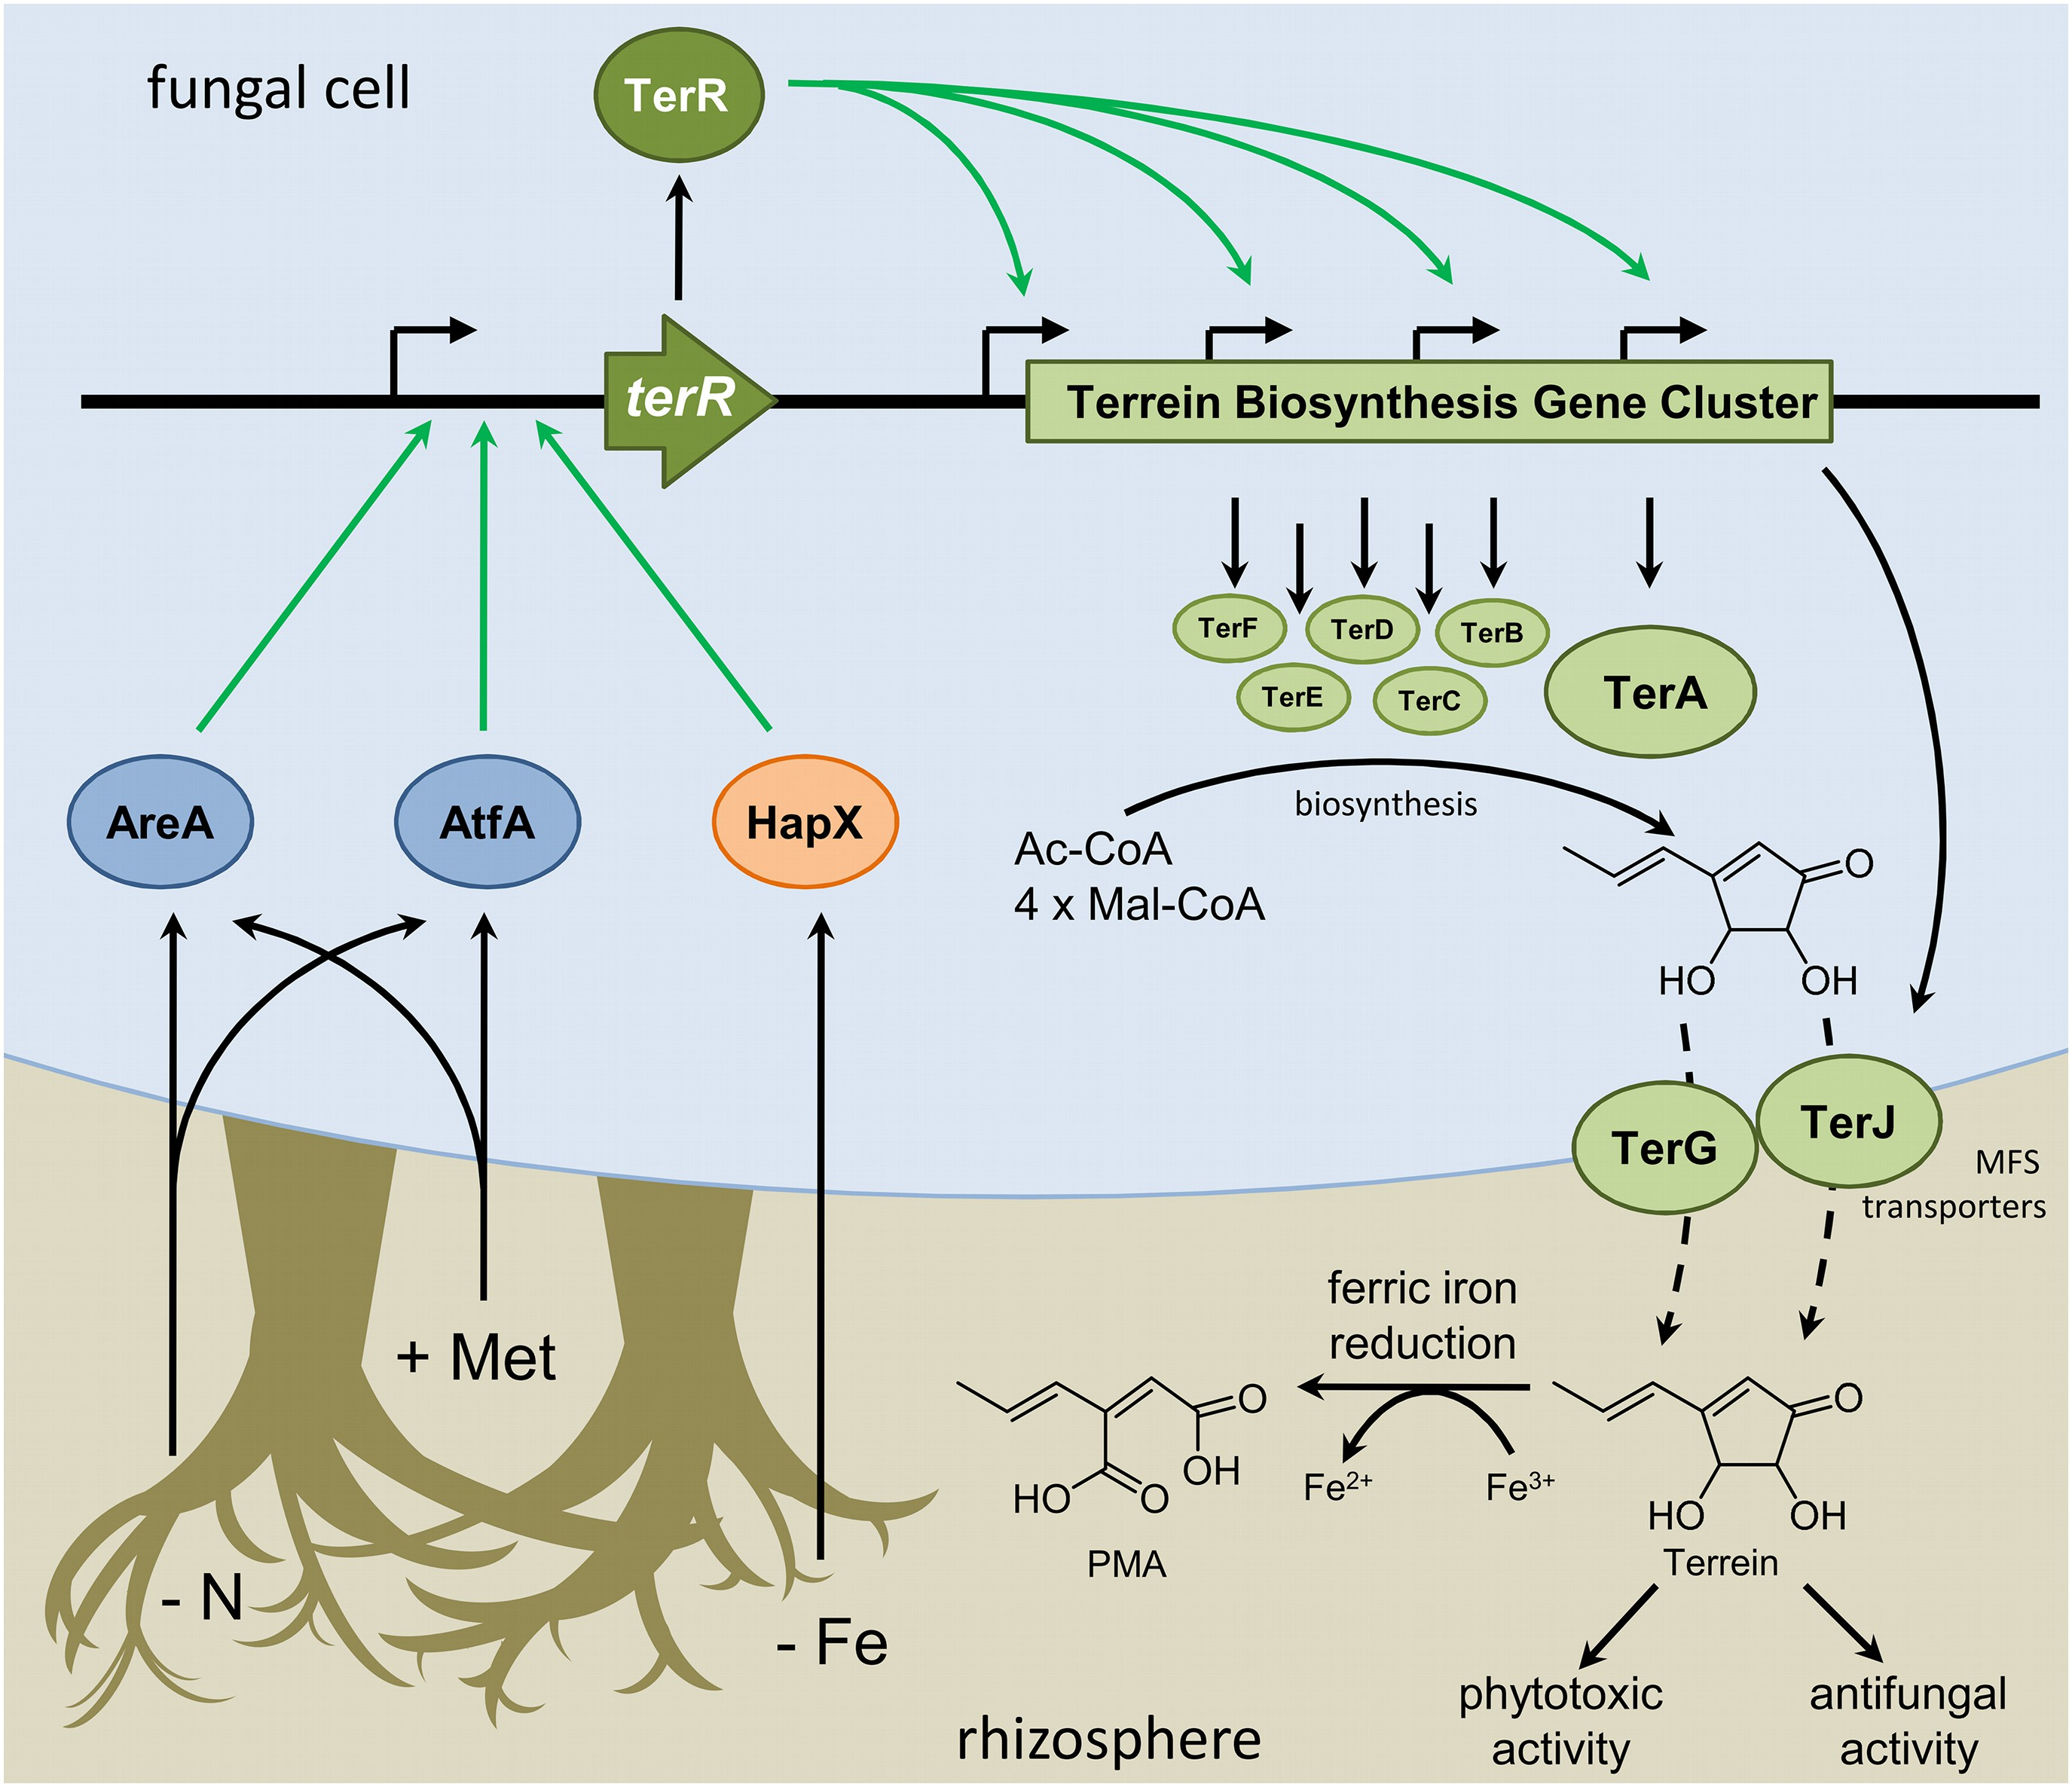 Phytotoxin production in aspergillus terreus is regulated by download asset open asset nvjuhfo Image collections